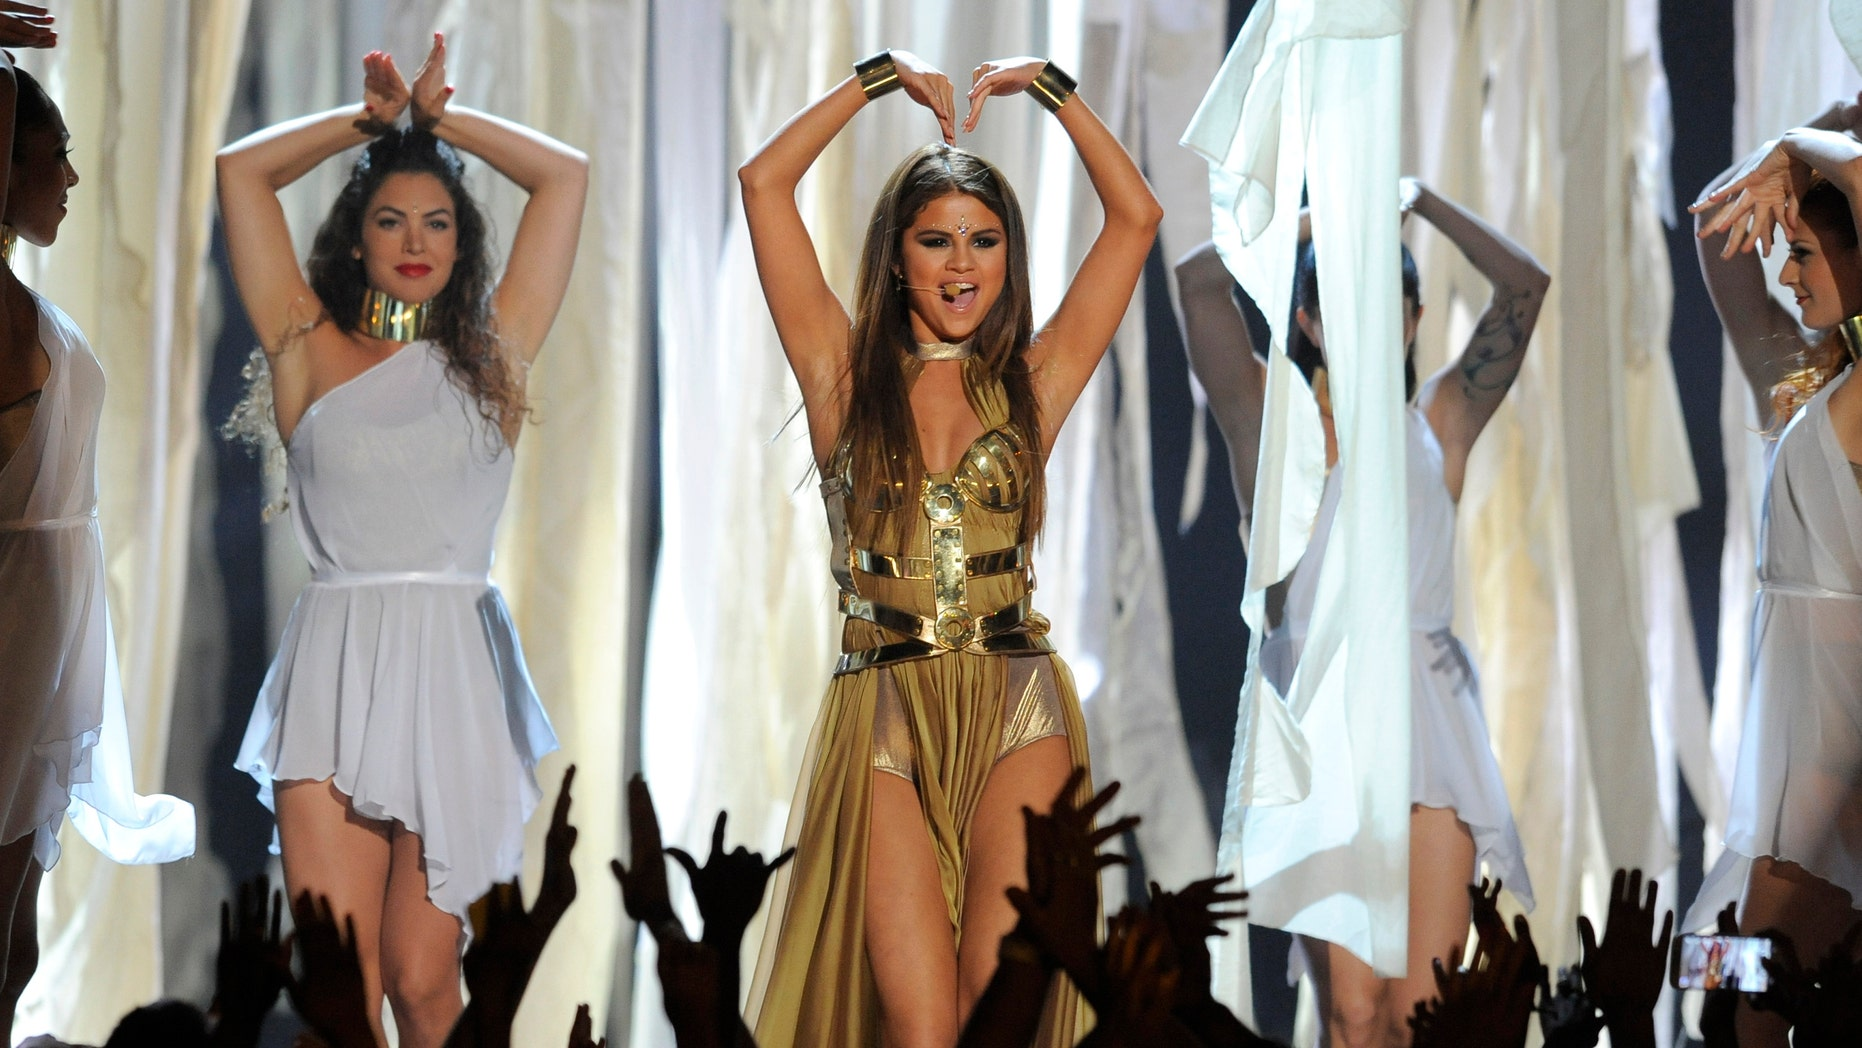 Selena Gomez, center, performs at the Billboard Music Awards at the MGM Grand Garden Arena on Sunday, May 19, 2013 in Las Vegas. (Photo by Chris Pizzello/Invision/AP)